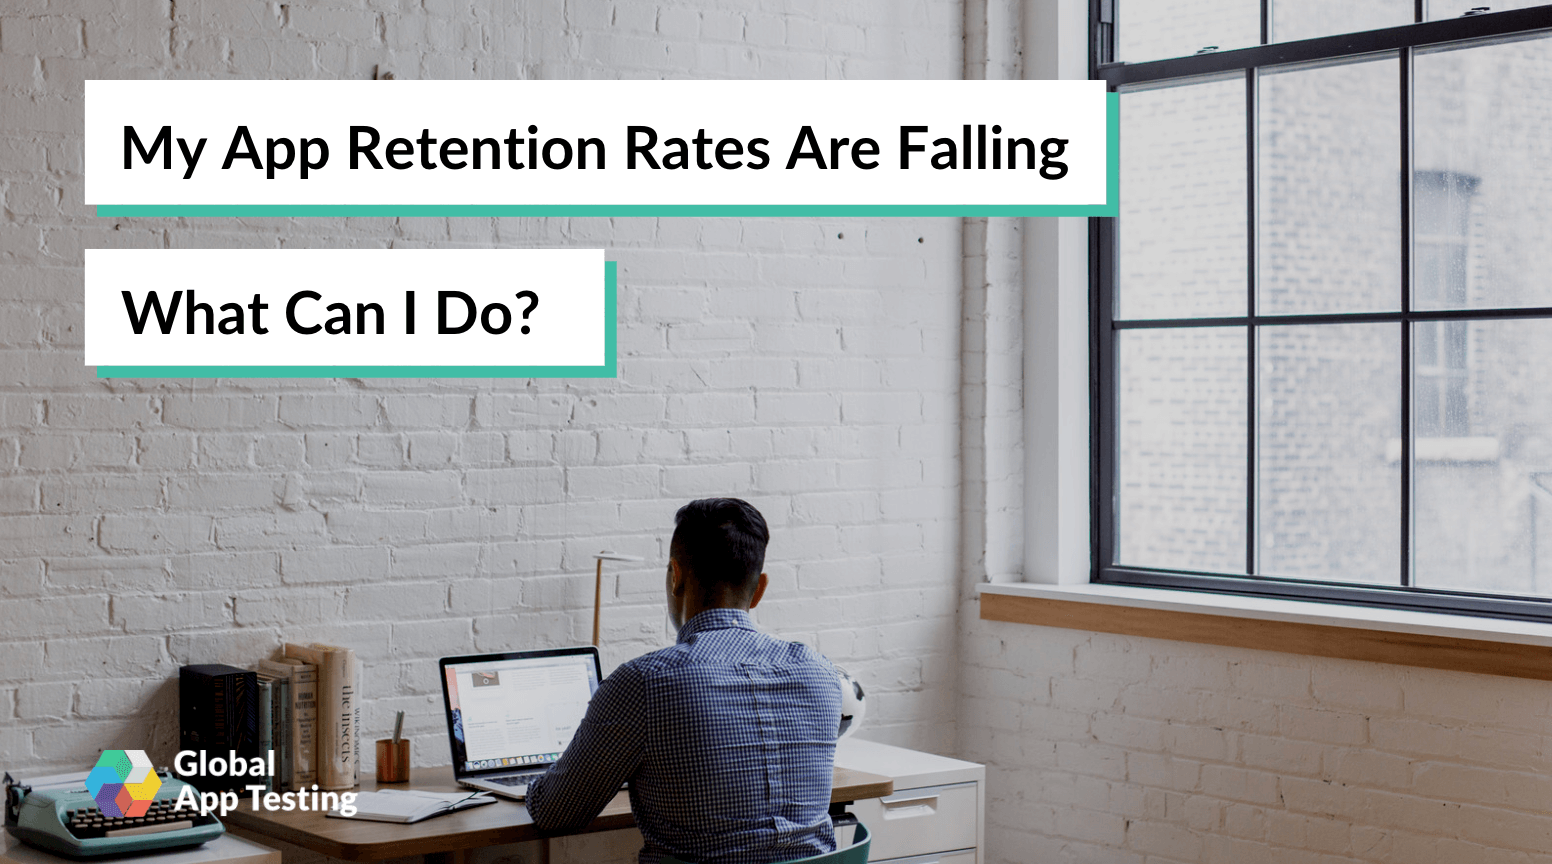 My App Retention Rates Are Falling: What Can I Do?